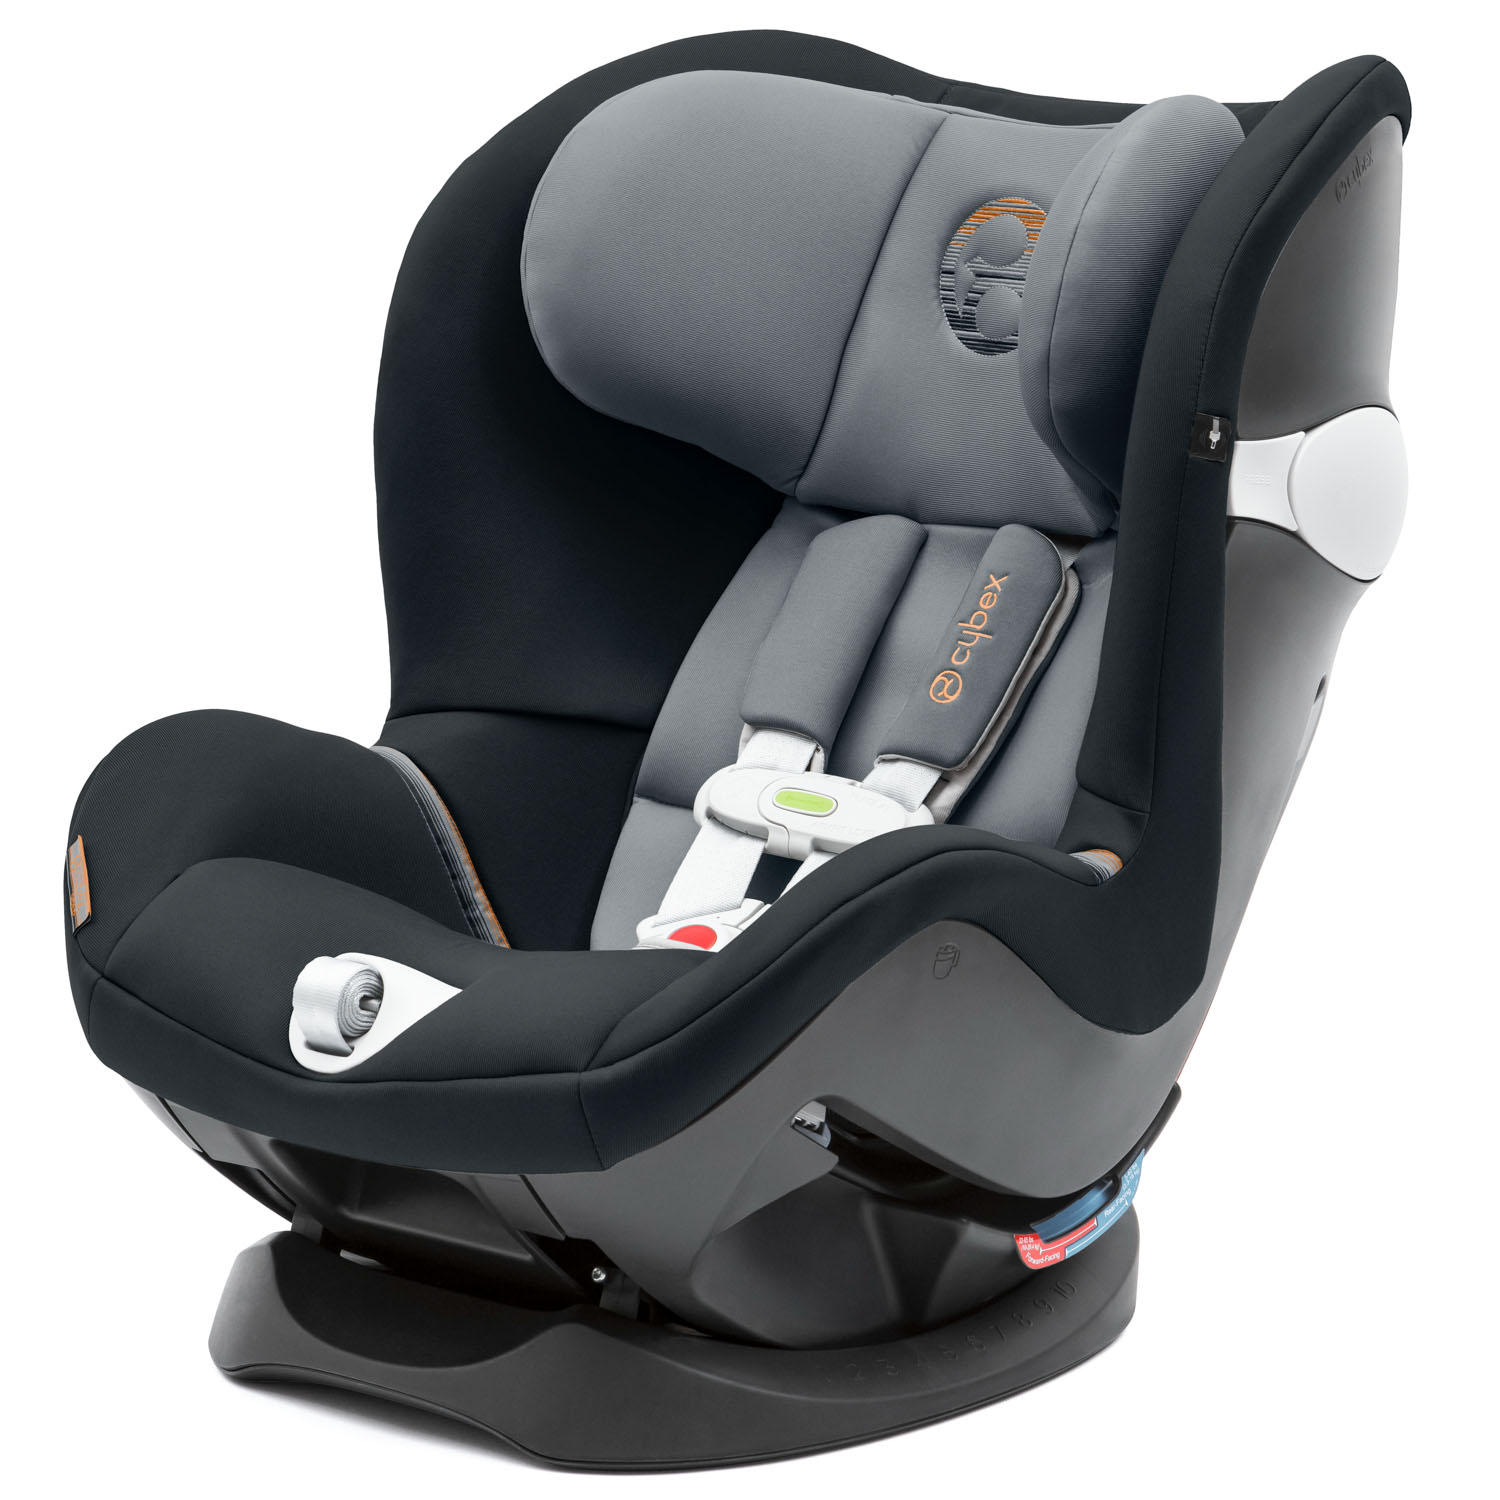 Cybex Sirona M Convertible Car Seat with SensorSafe 2.0